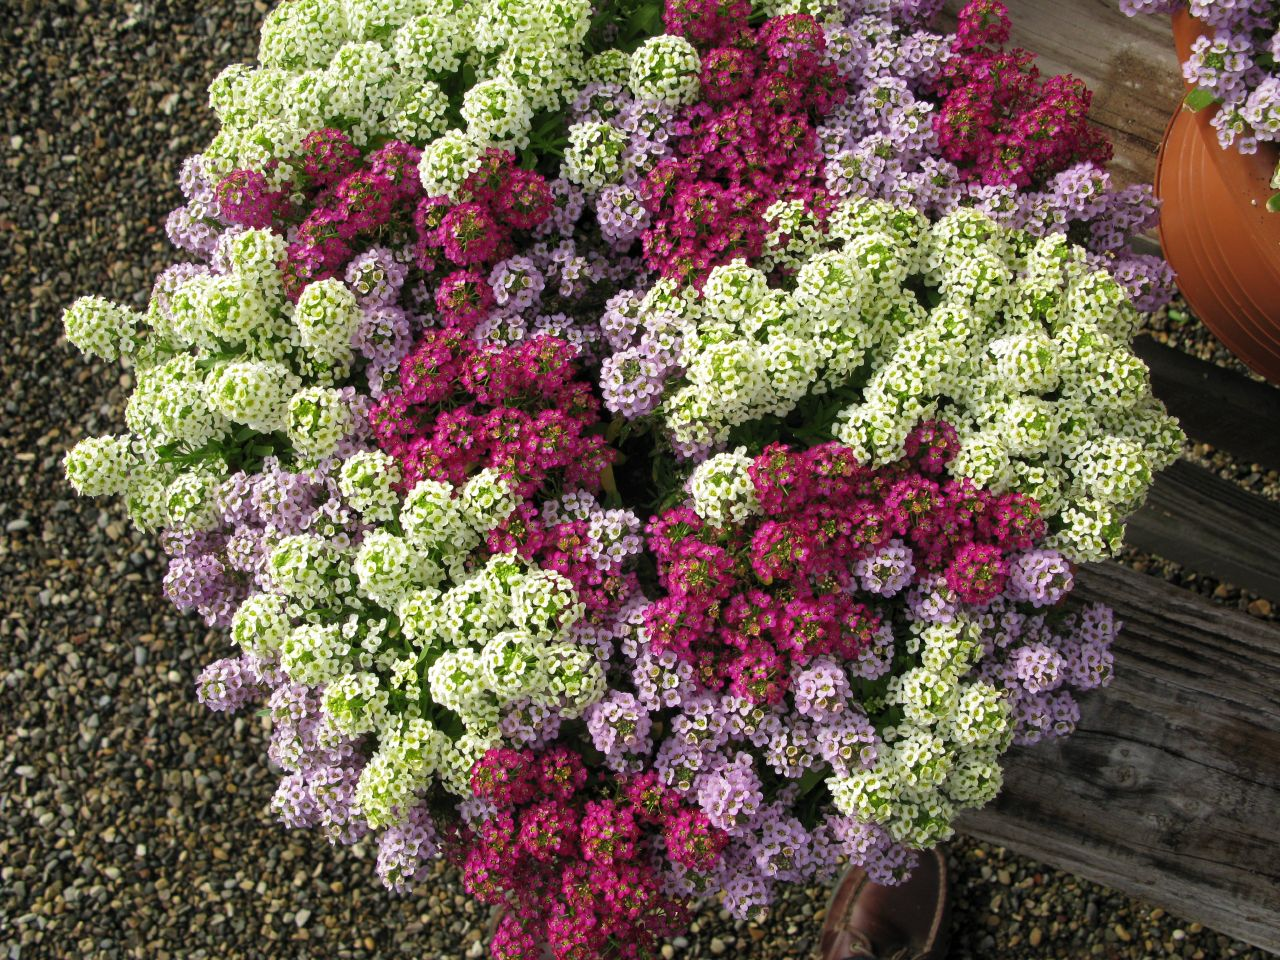 Multicolored sea alyssum.